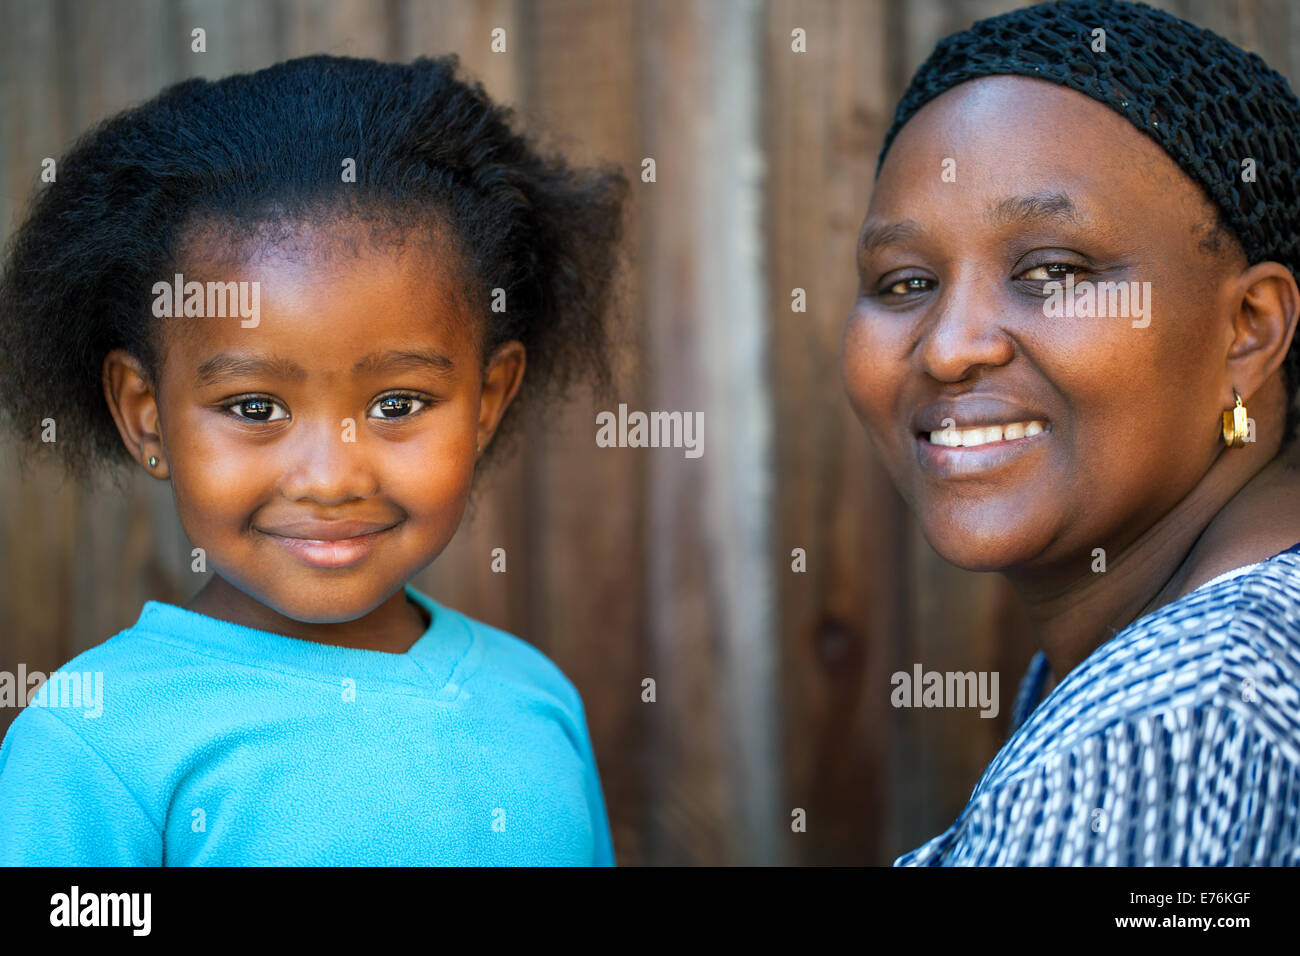 Portrait of cute African girl next to mother. - Stock Image